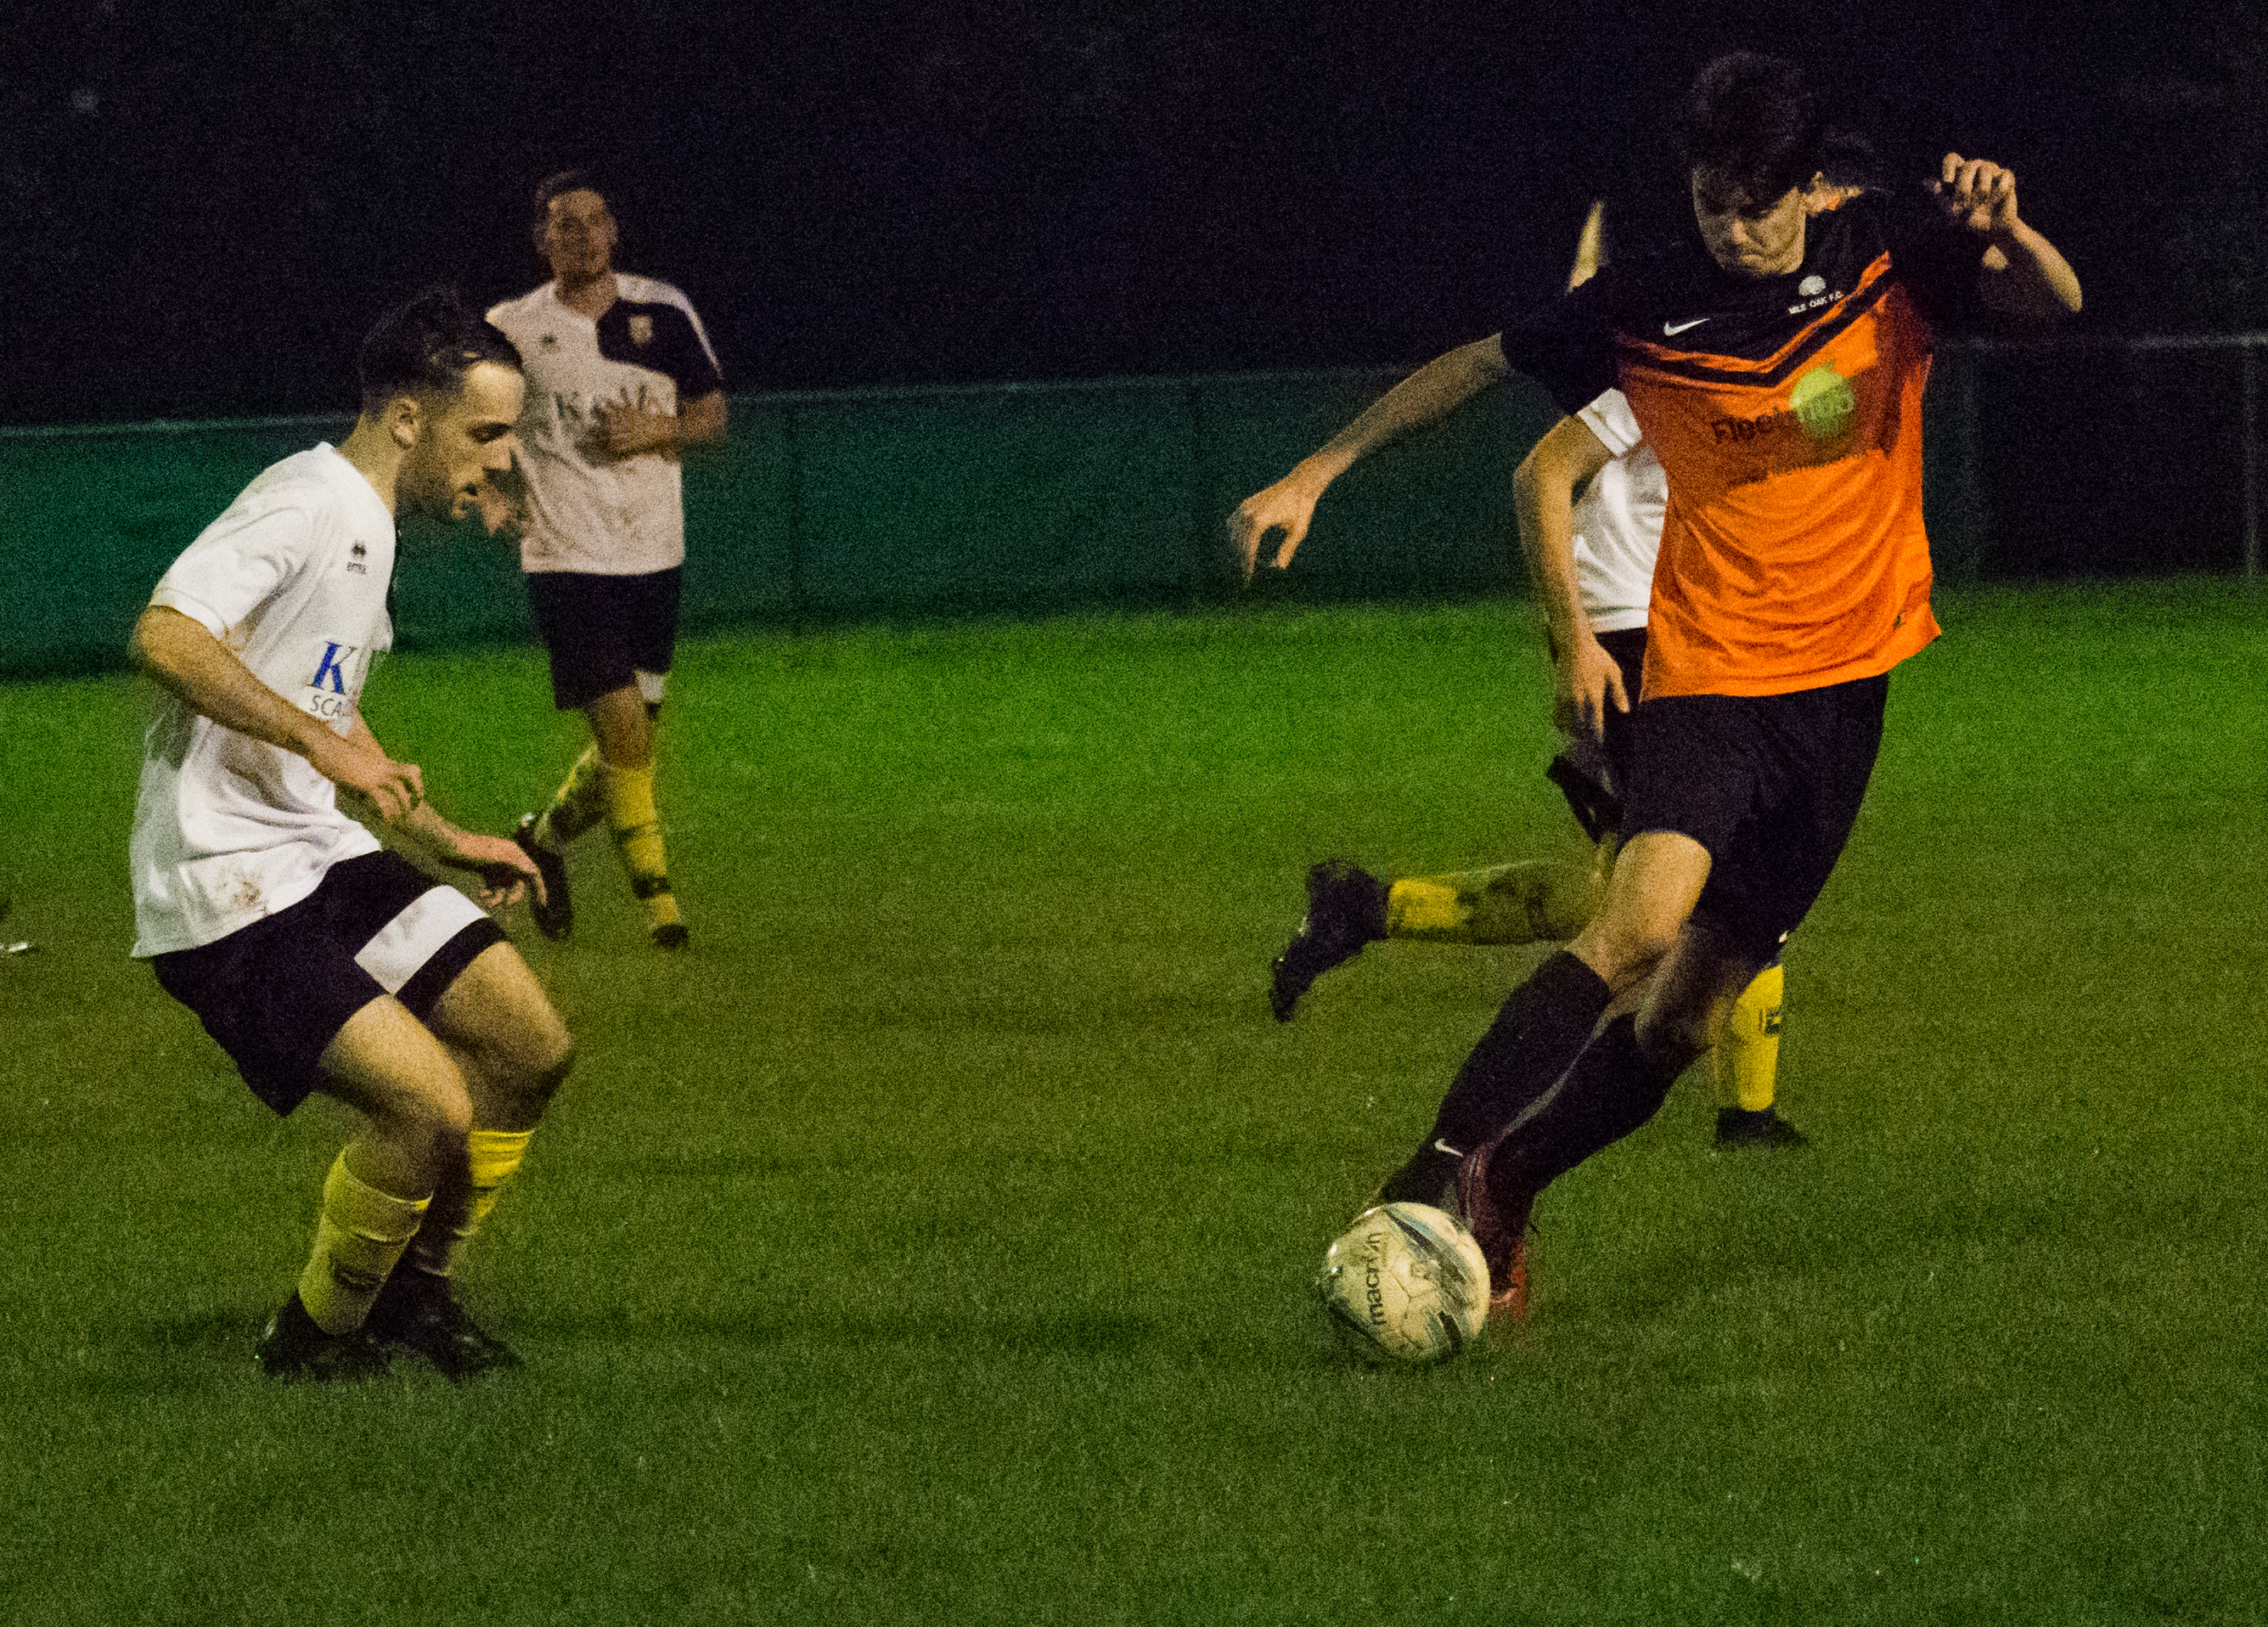 Mile Oak U21s vs Pagham 26.10.17 04